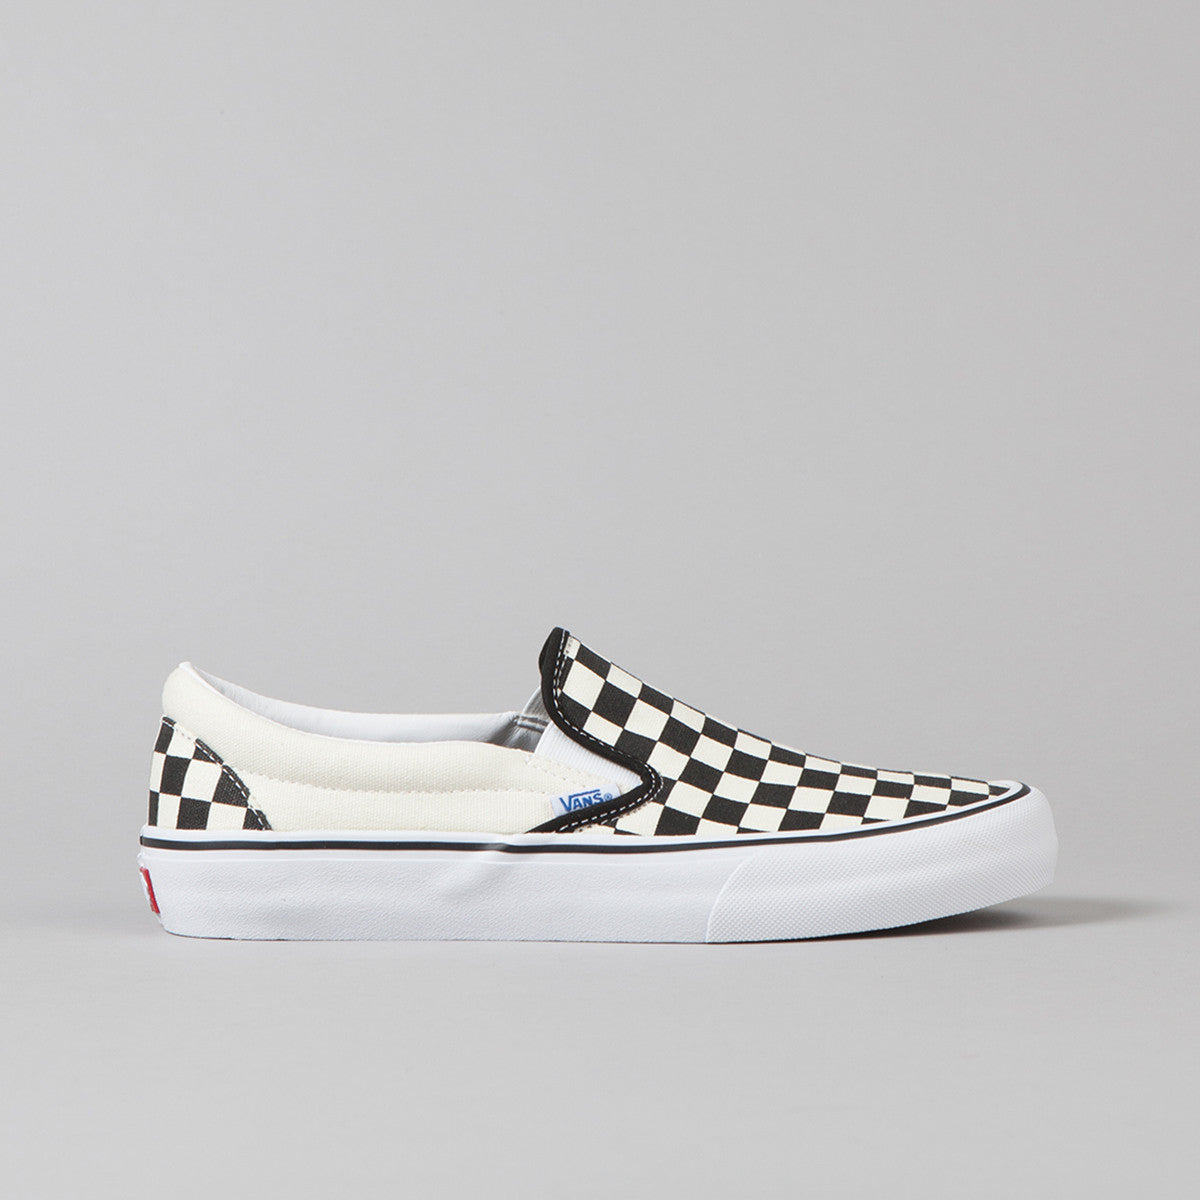 Vans 50th Slip On Pro Shoes